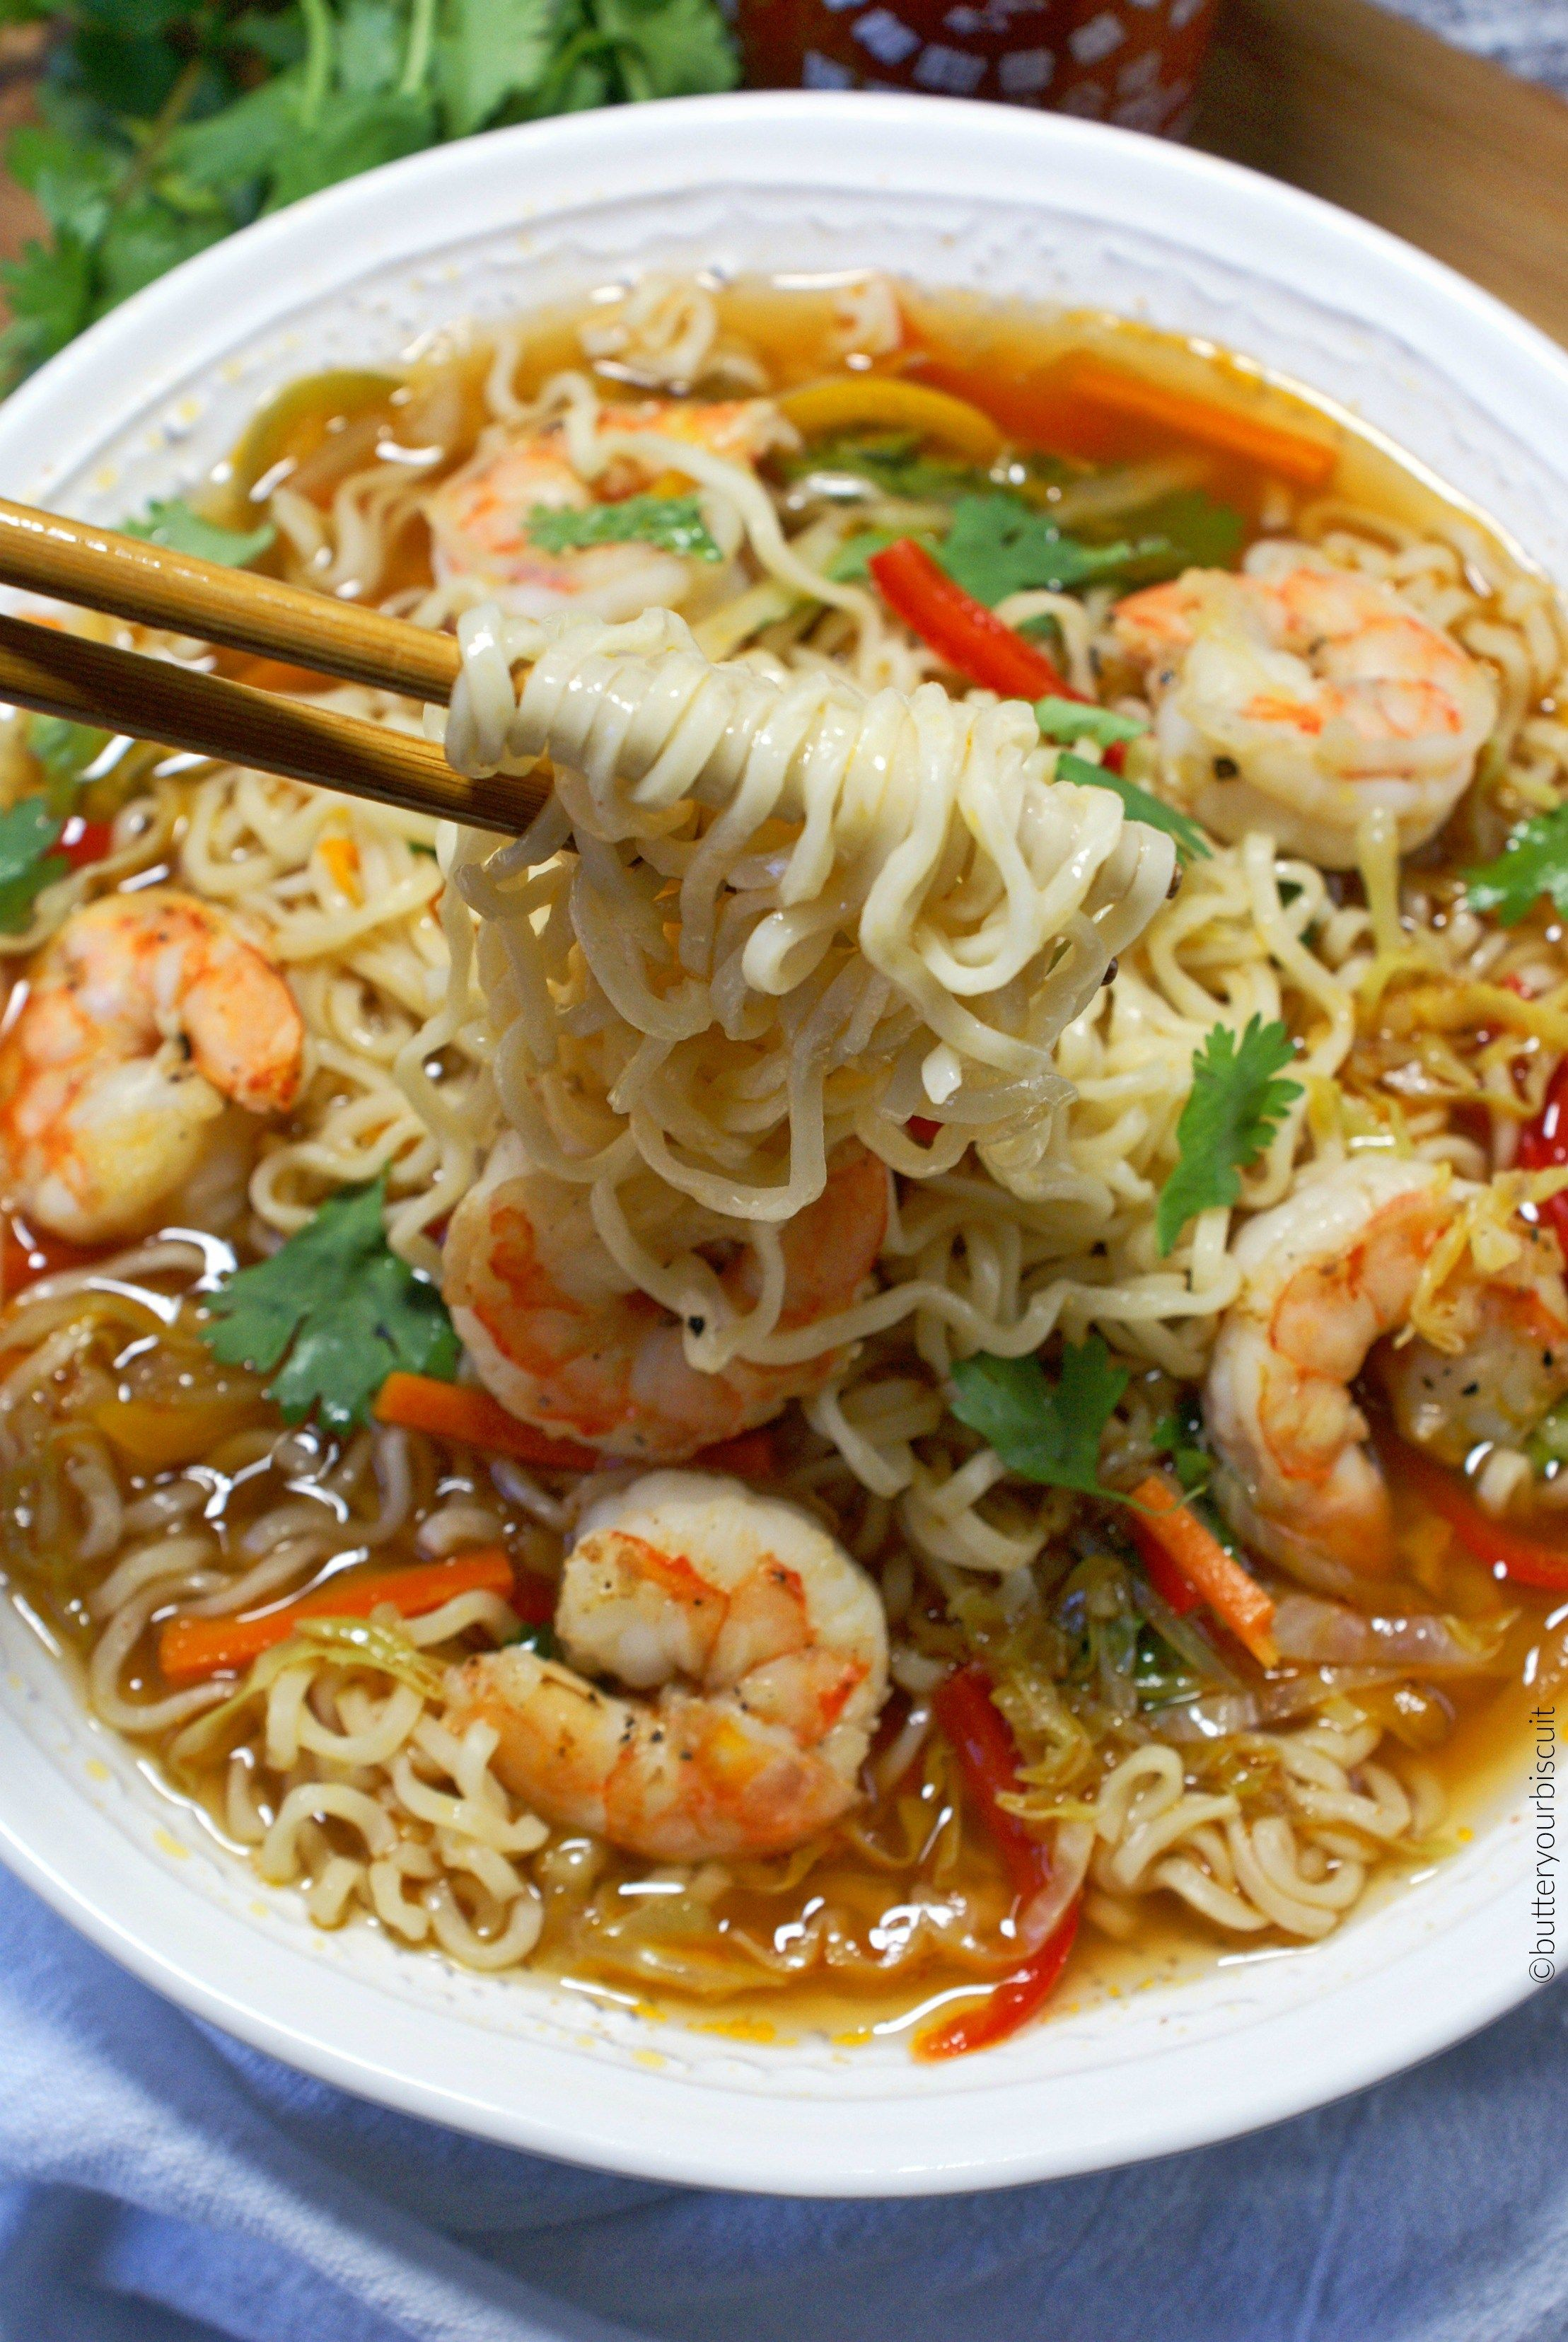 Spicy Shrimp Ramen Bowls Recipe | Butter Your Bisc